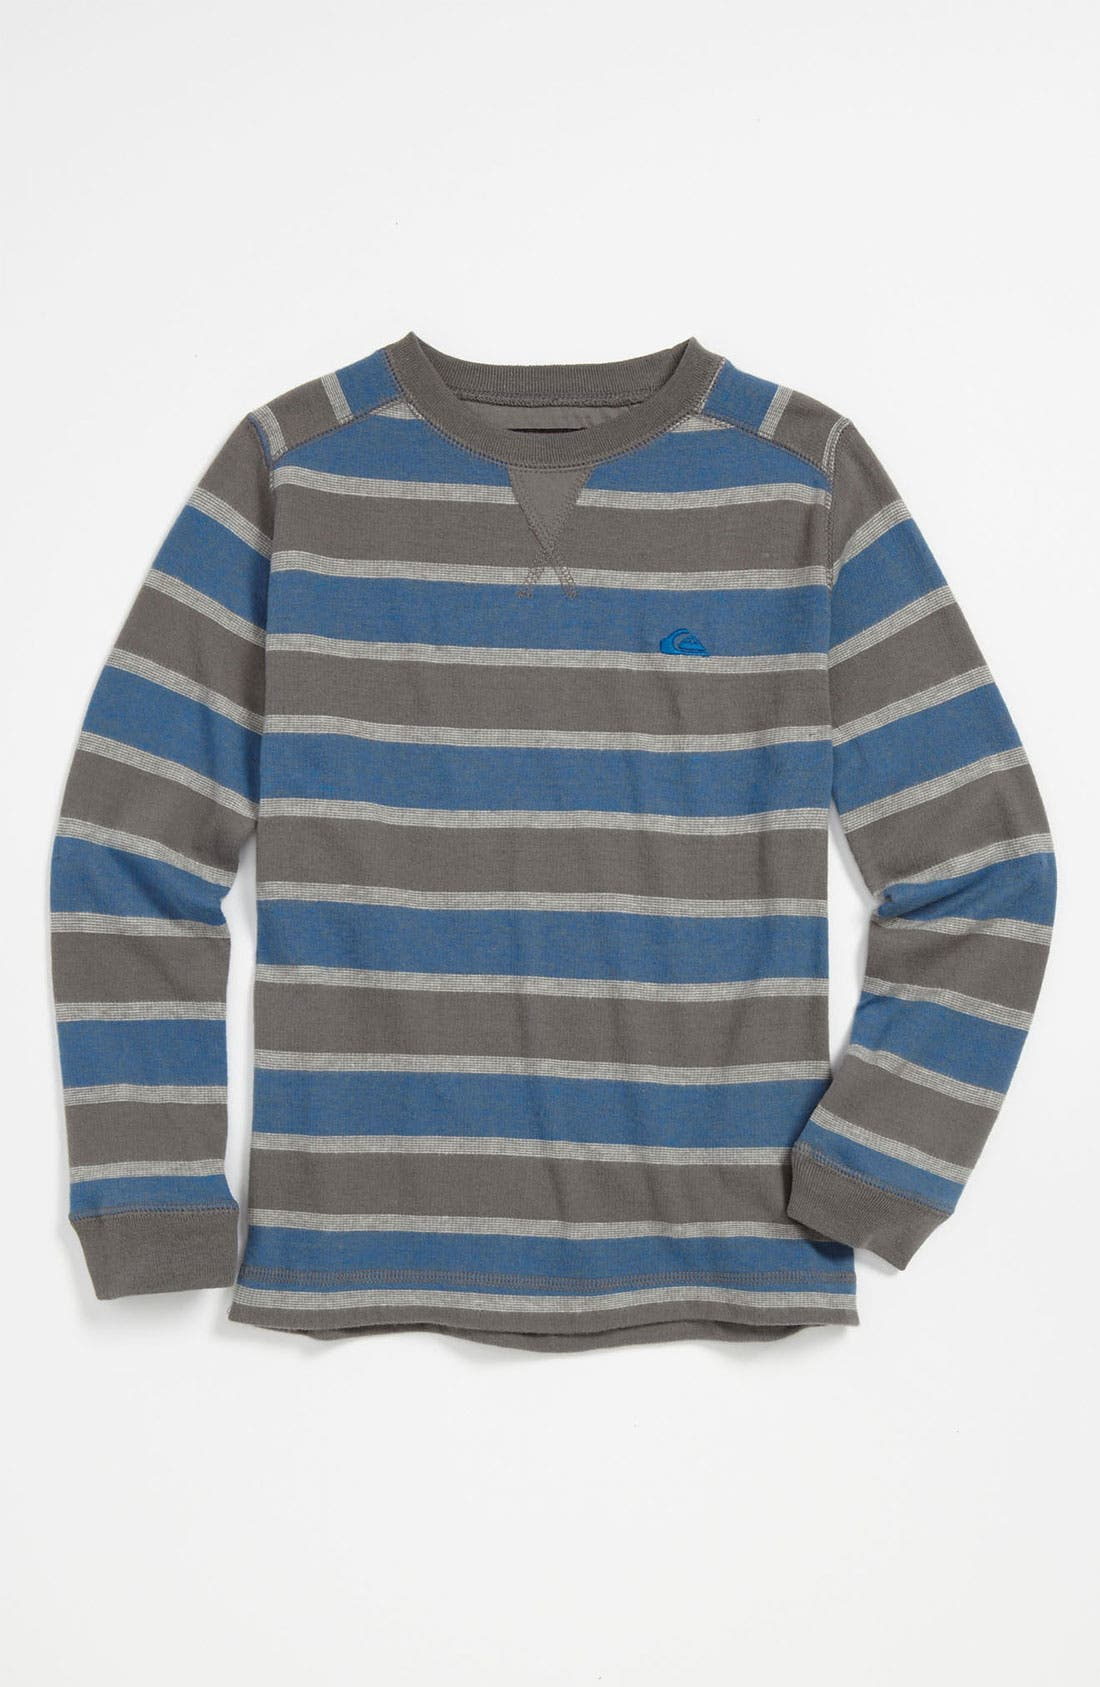 Alternate Image 1 Selected - Quiksilver 'Snitty' Thermal Shirt (Toddler)